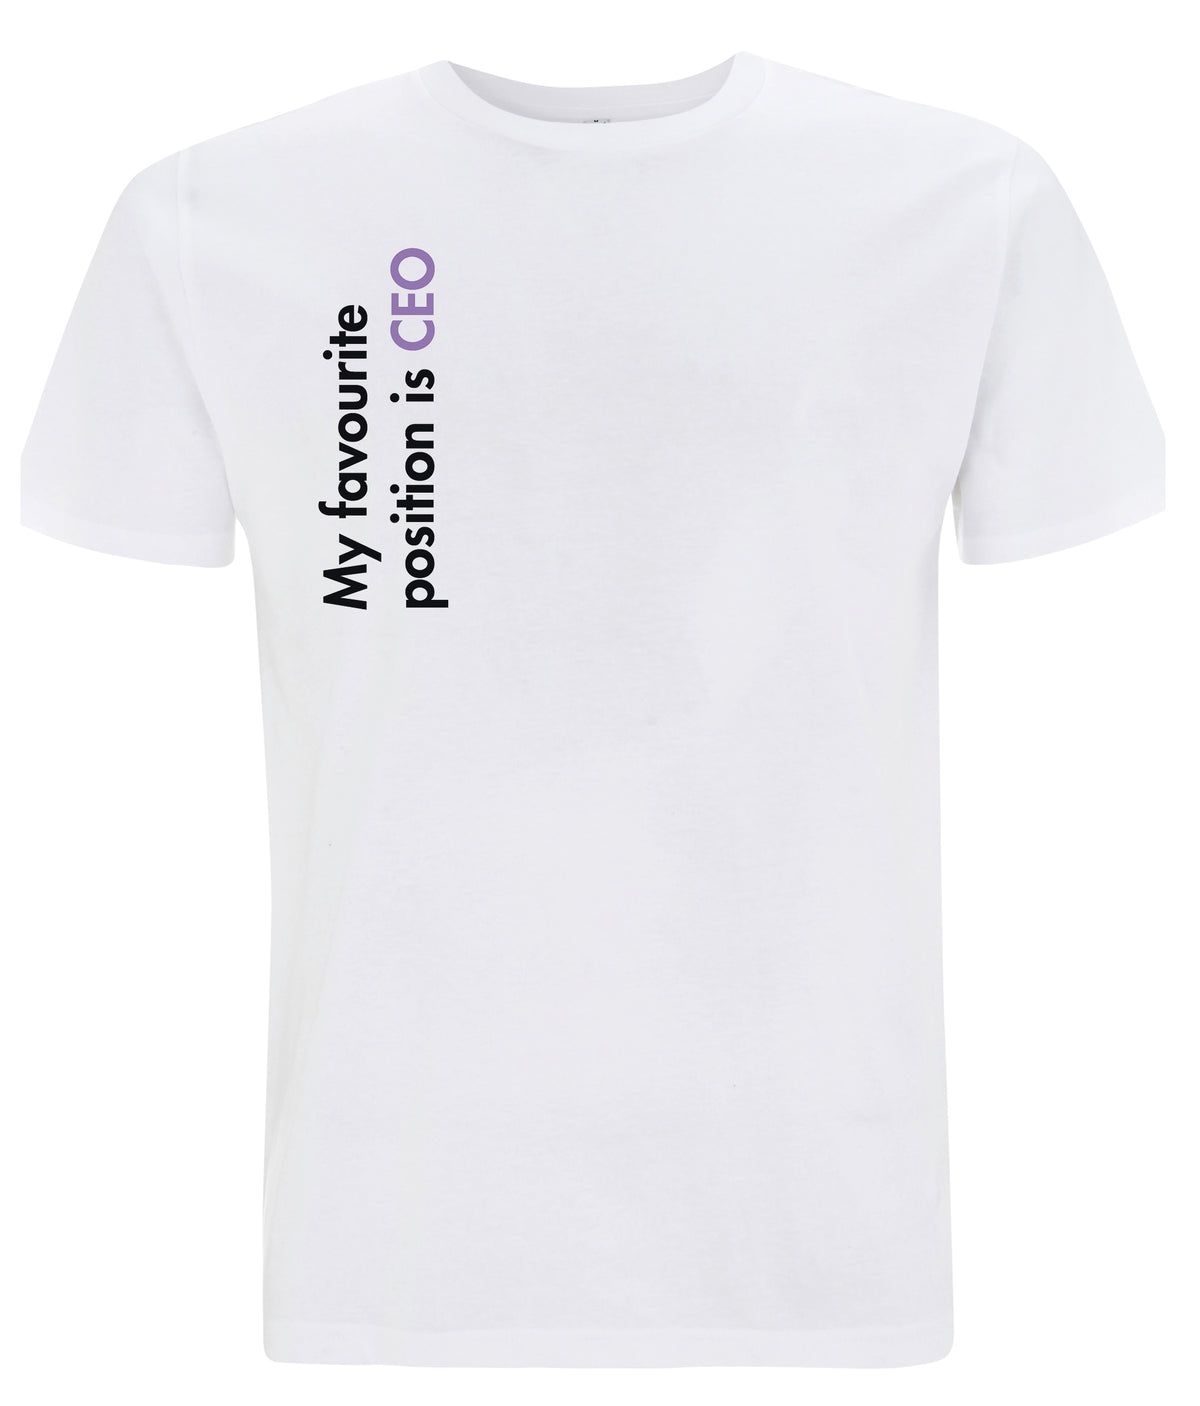 My Favourite Position Is CEO Organic Feminist T Shirt White